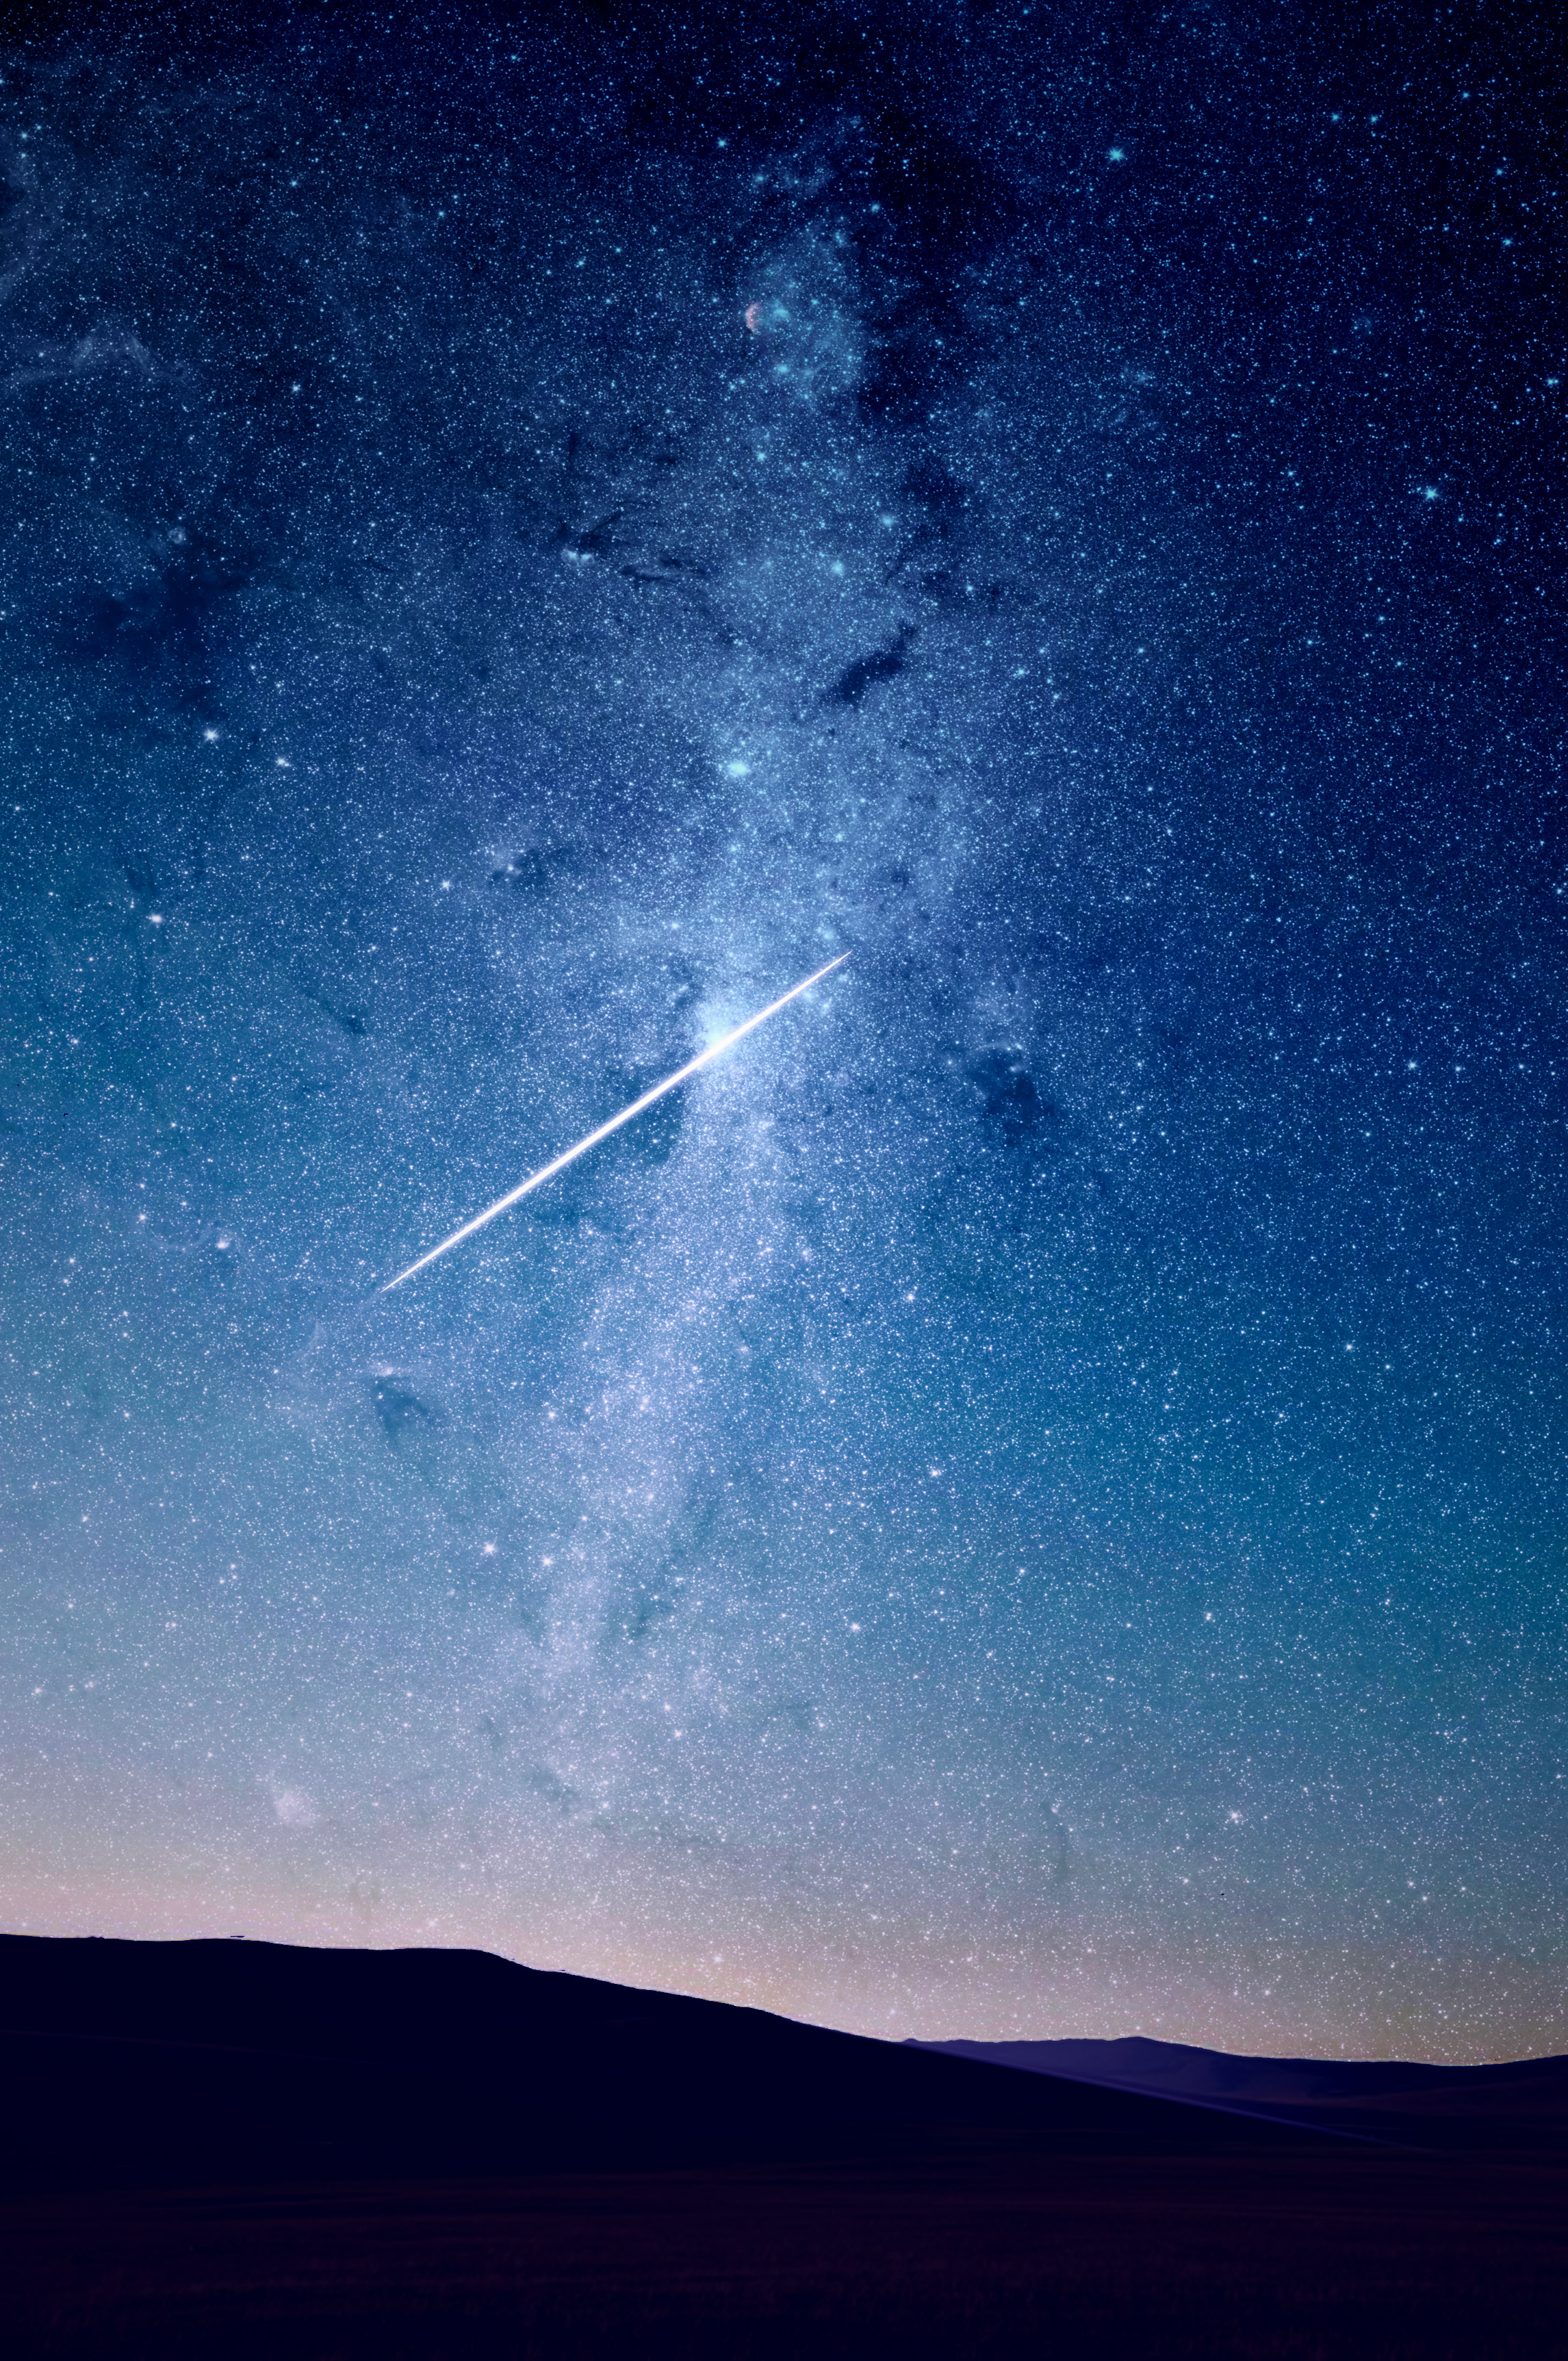 Photographing the Perseid Meteor Shower - Night Photography Week